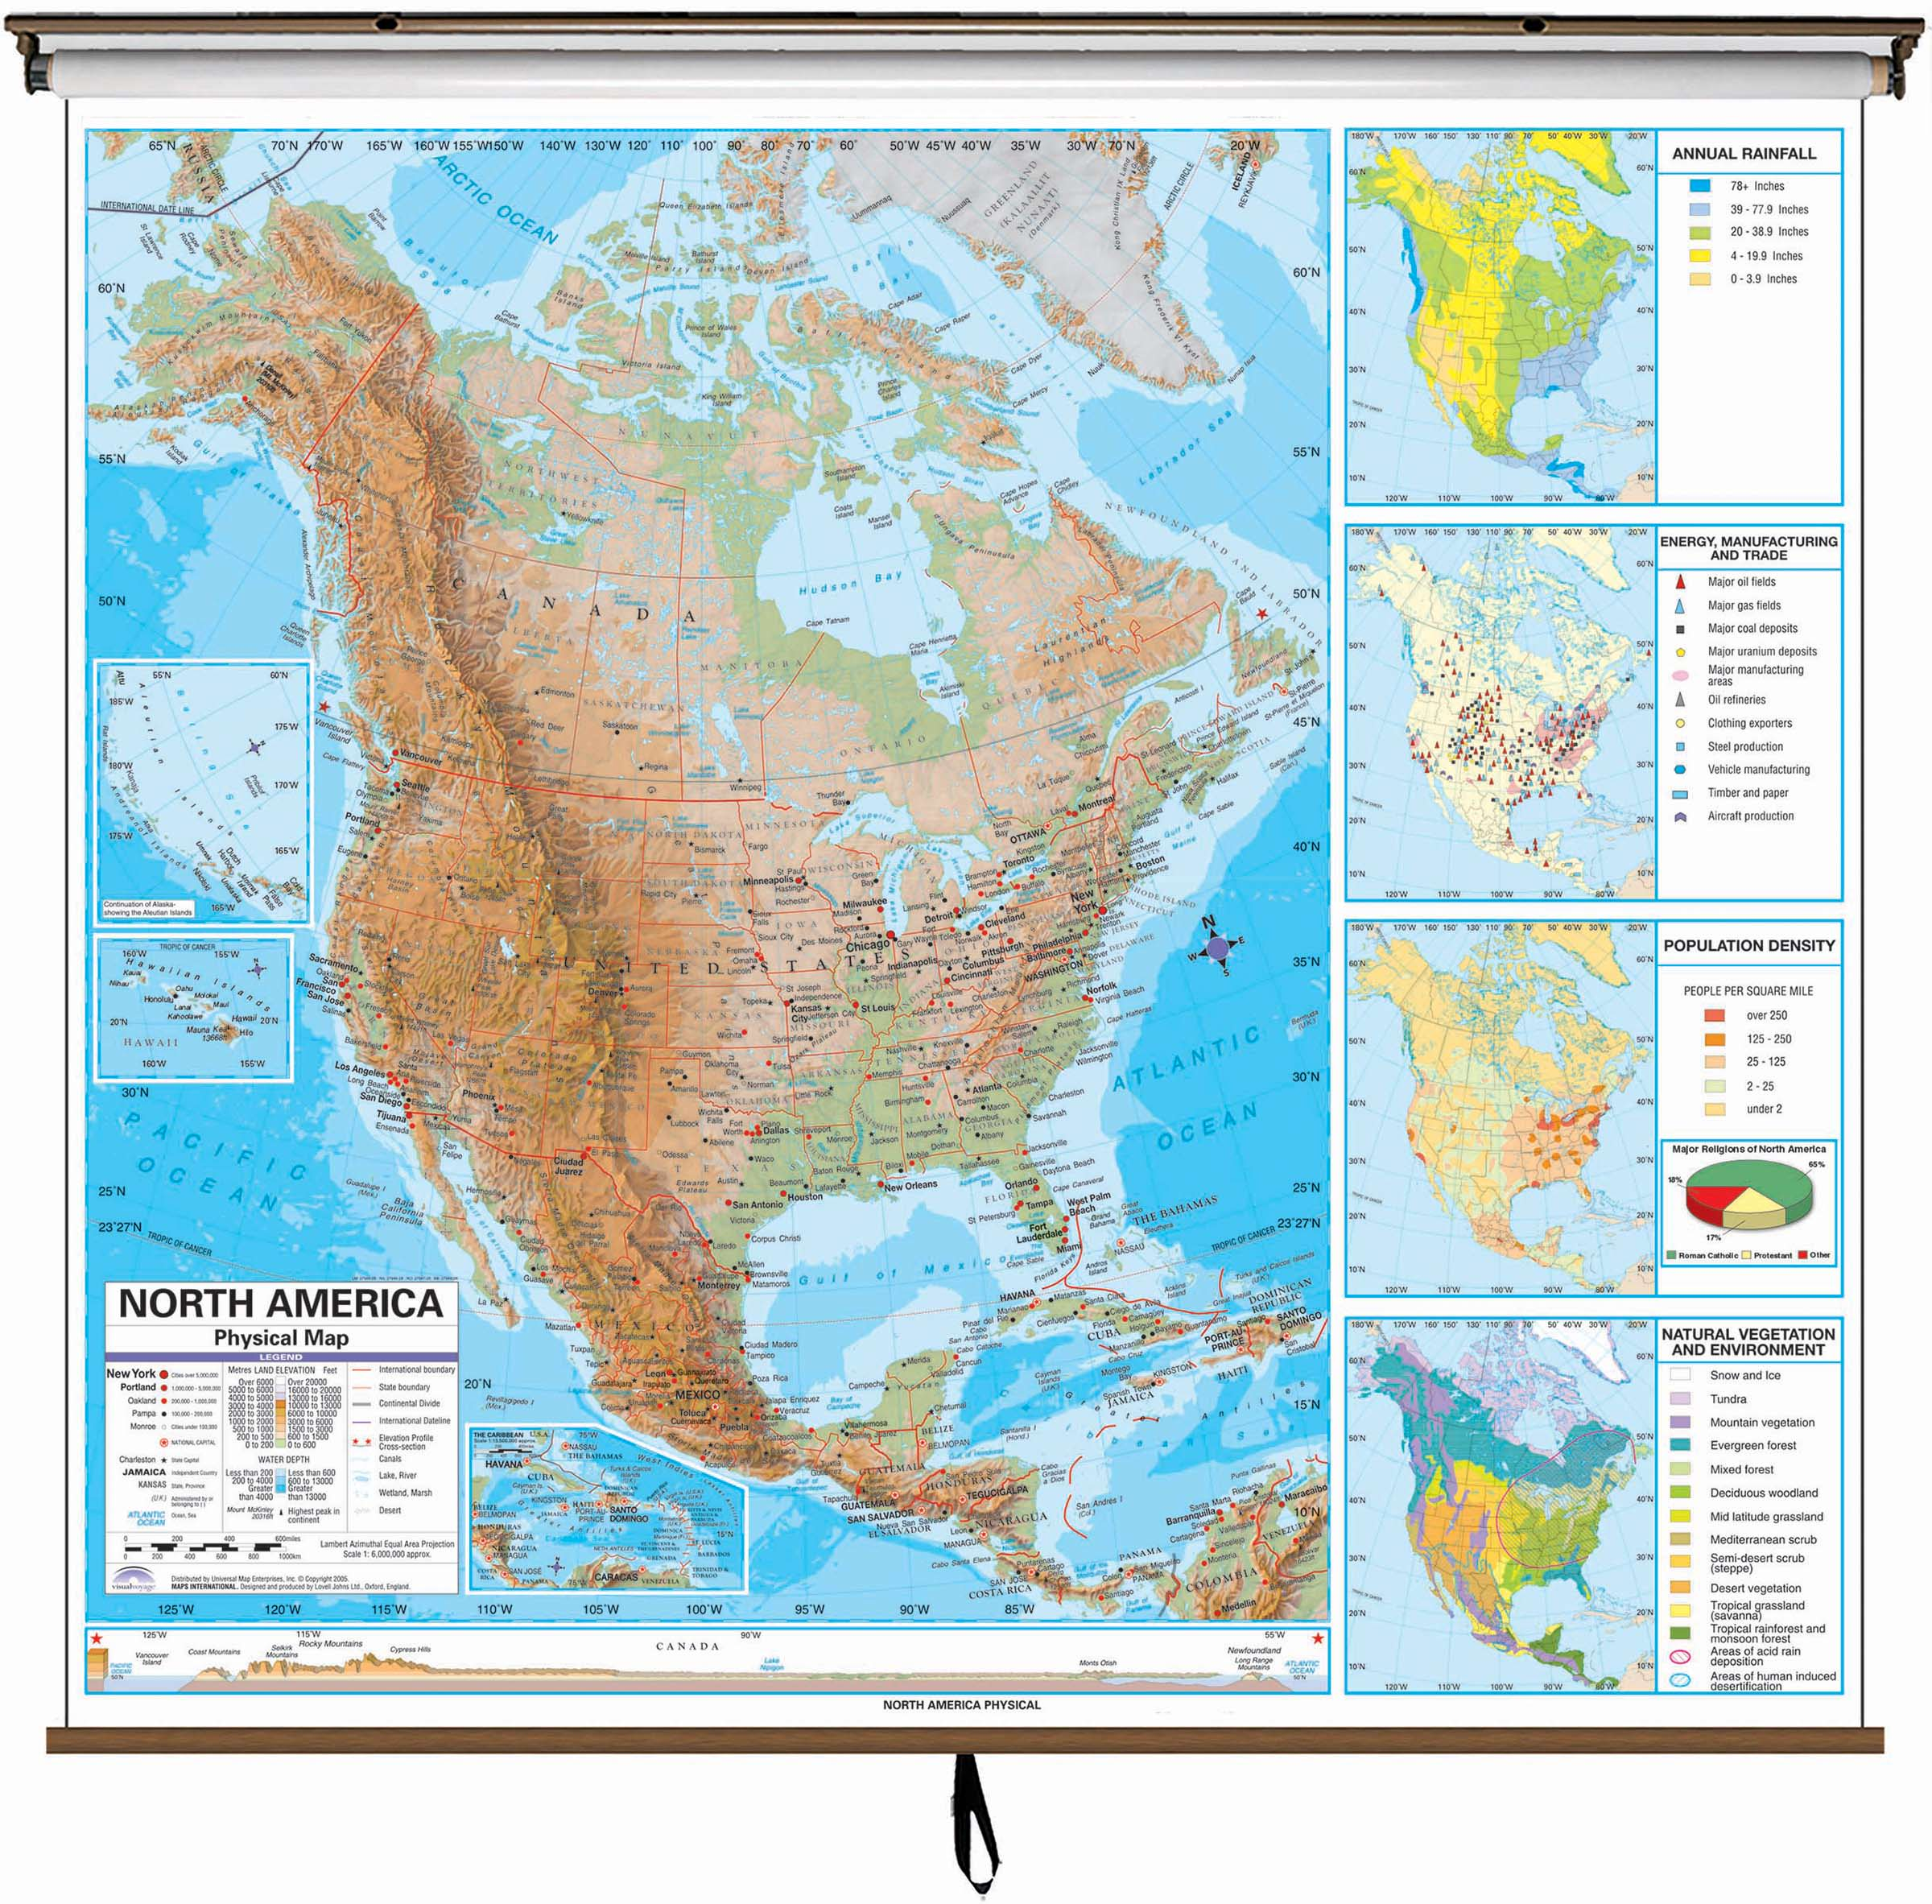 Population Density Map Of North America.North America Advanced Physical Classroom Wall Map On Roller W